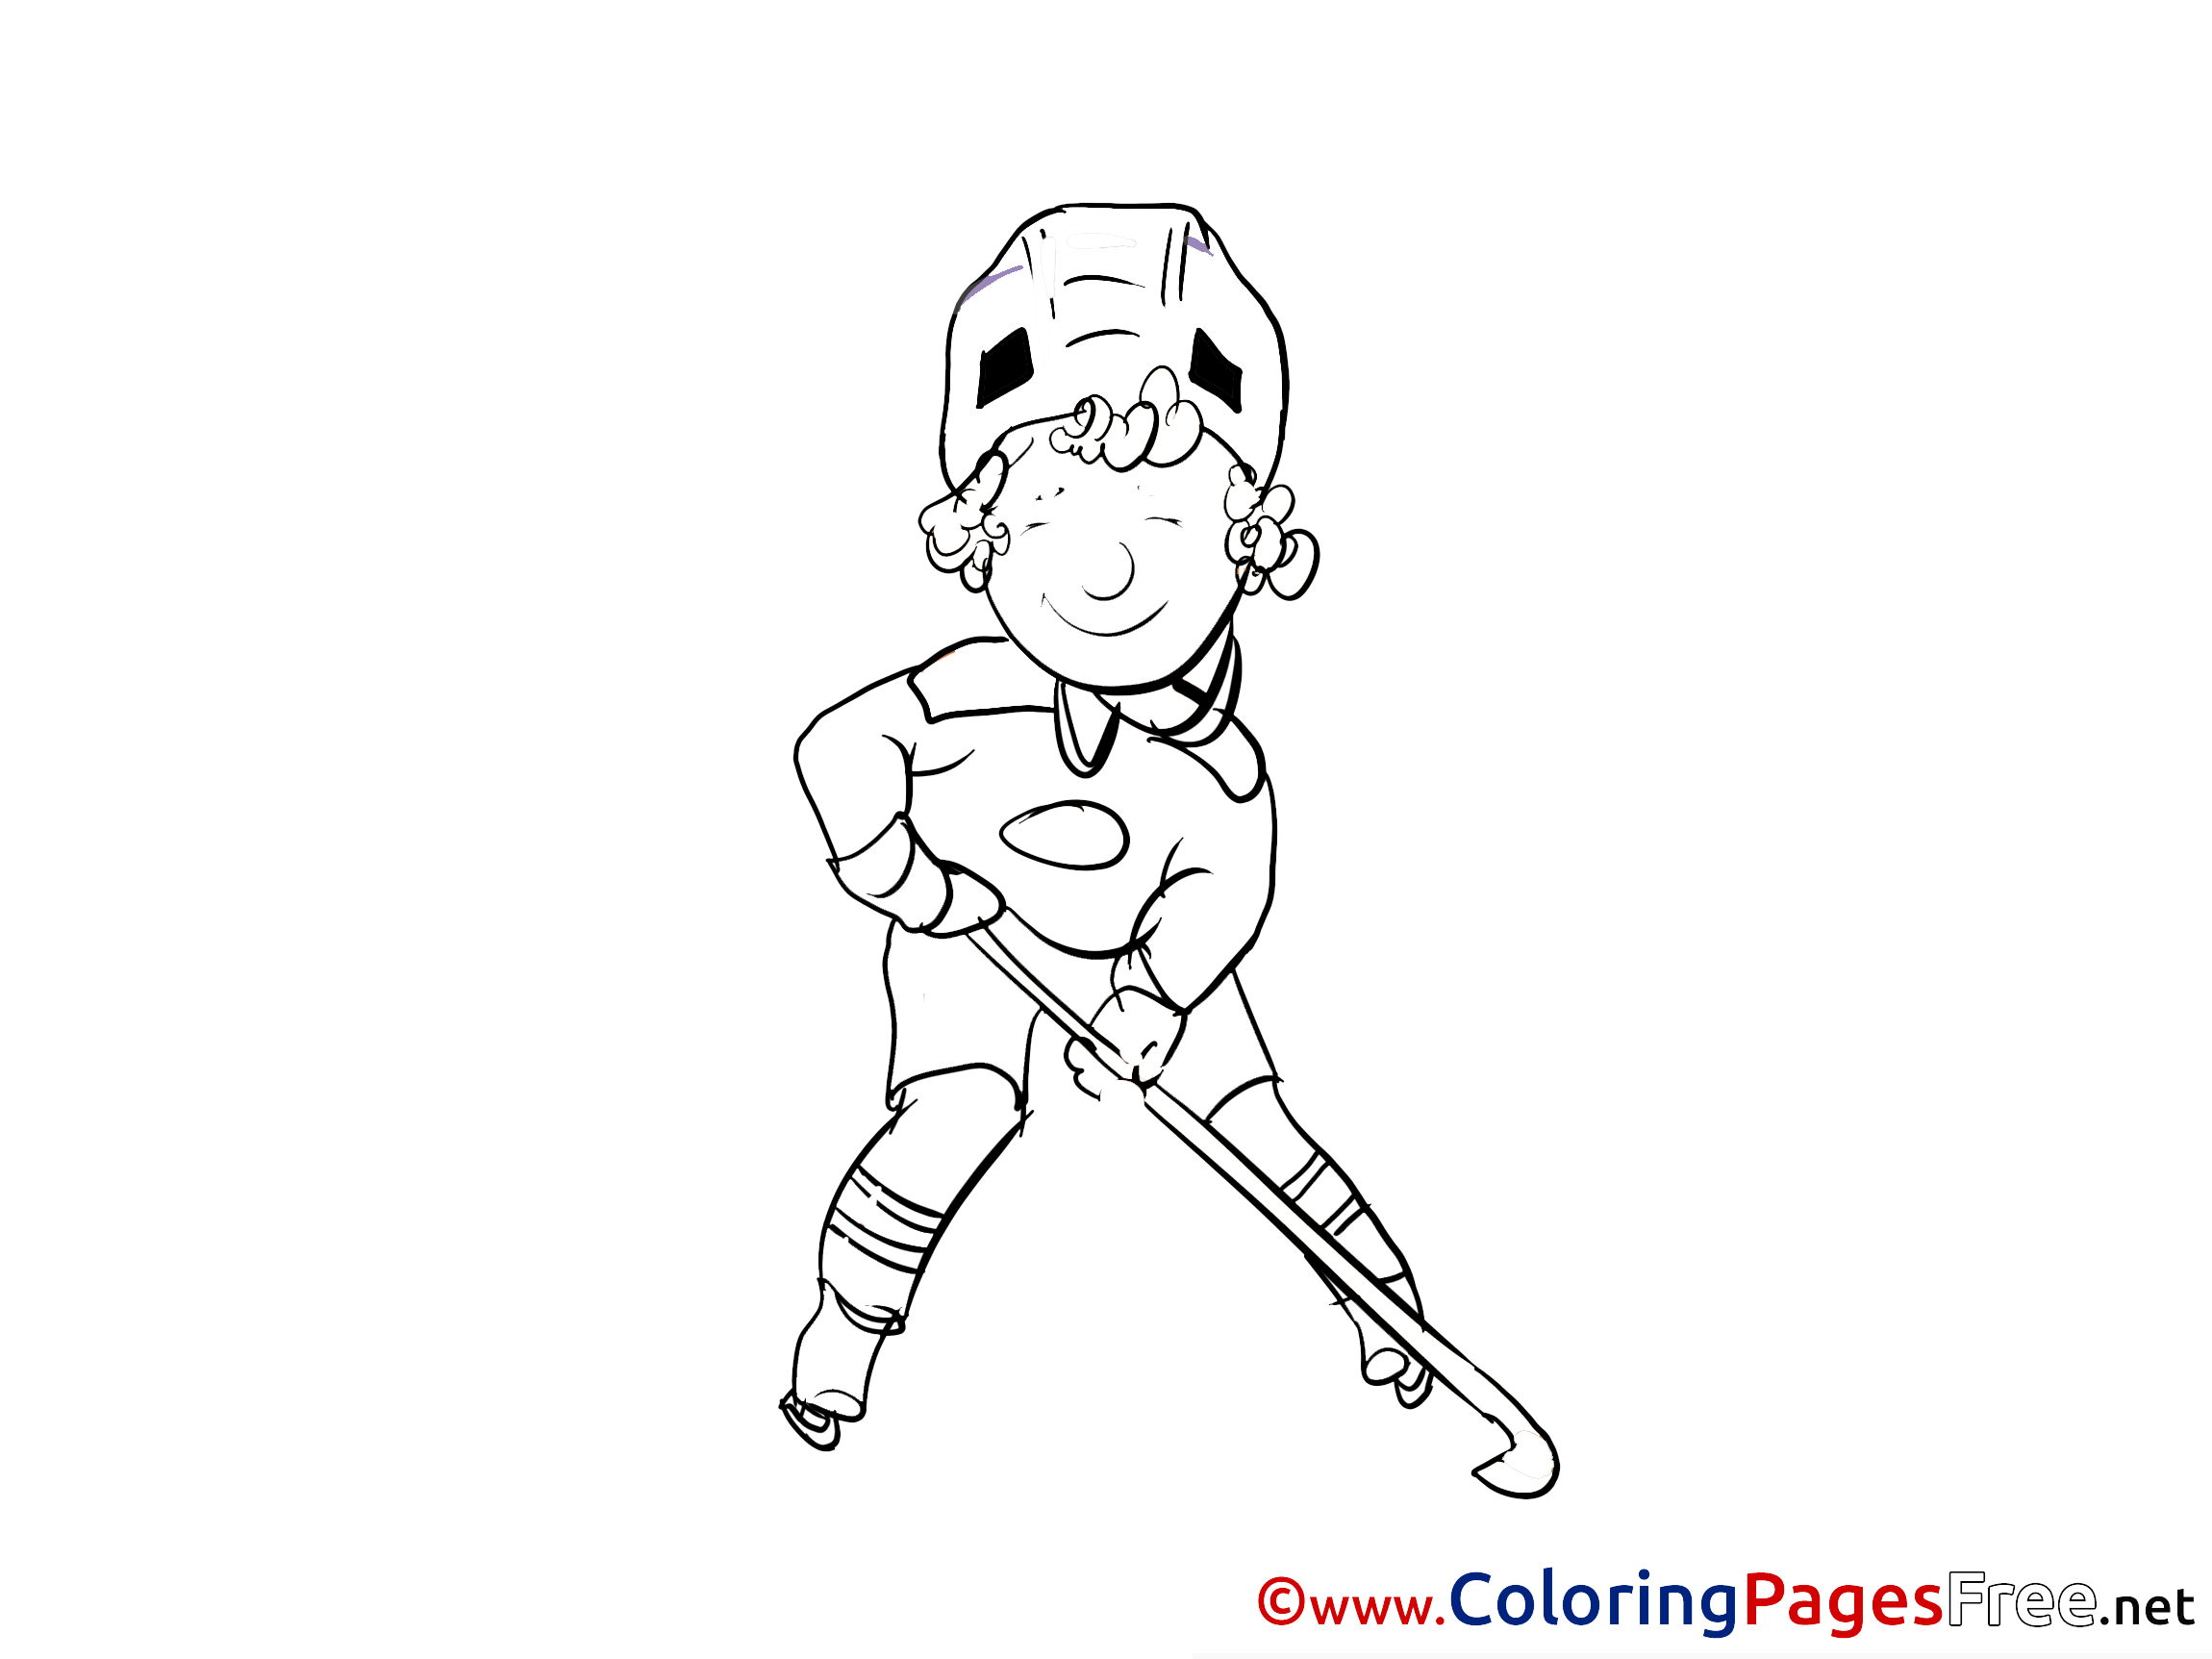 Hockey Coloring Pages - GetColoringPages.com | 1725x2300